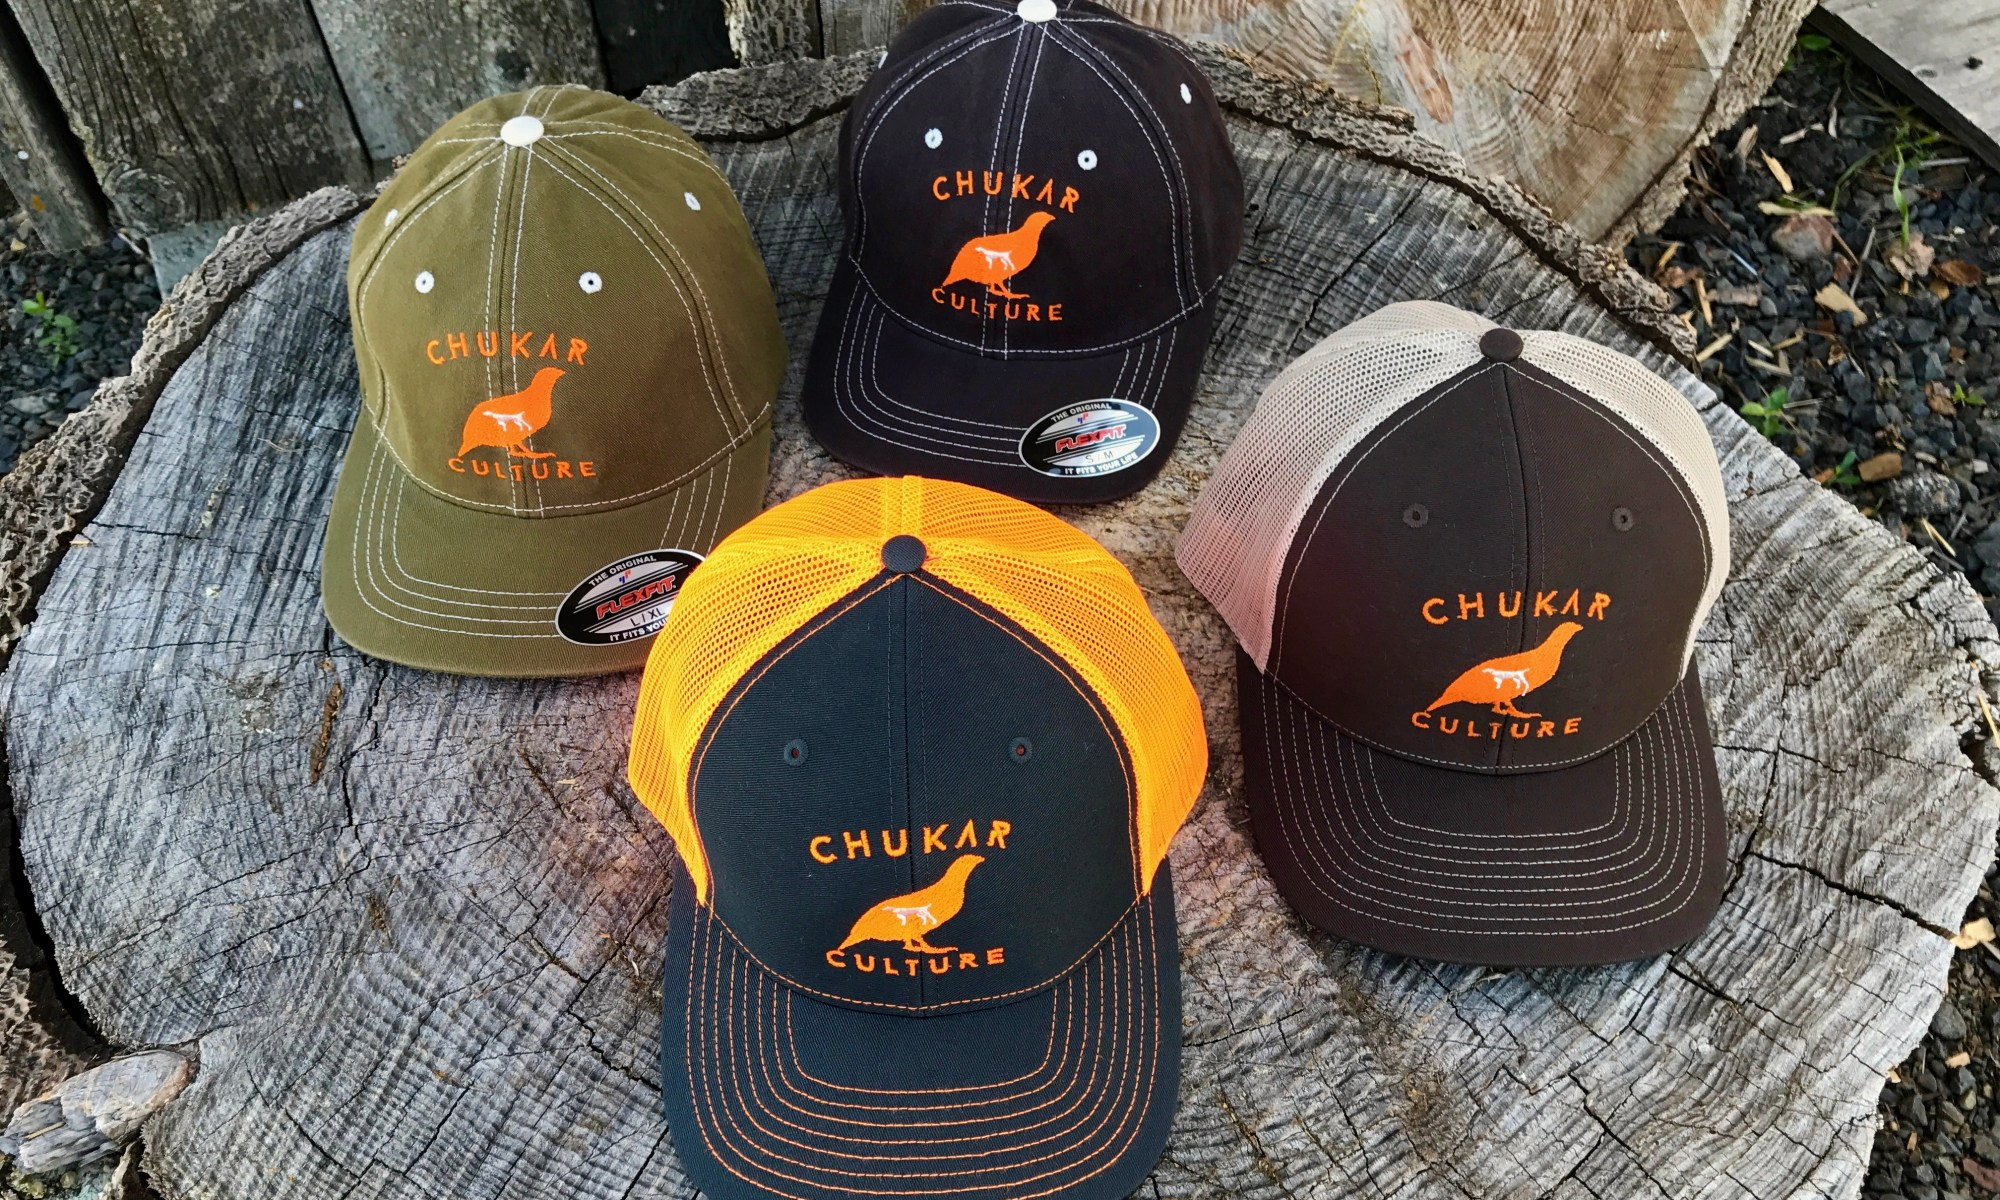 Chukar hunting hats